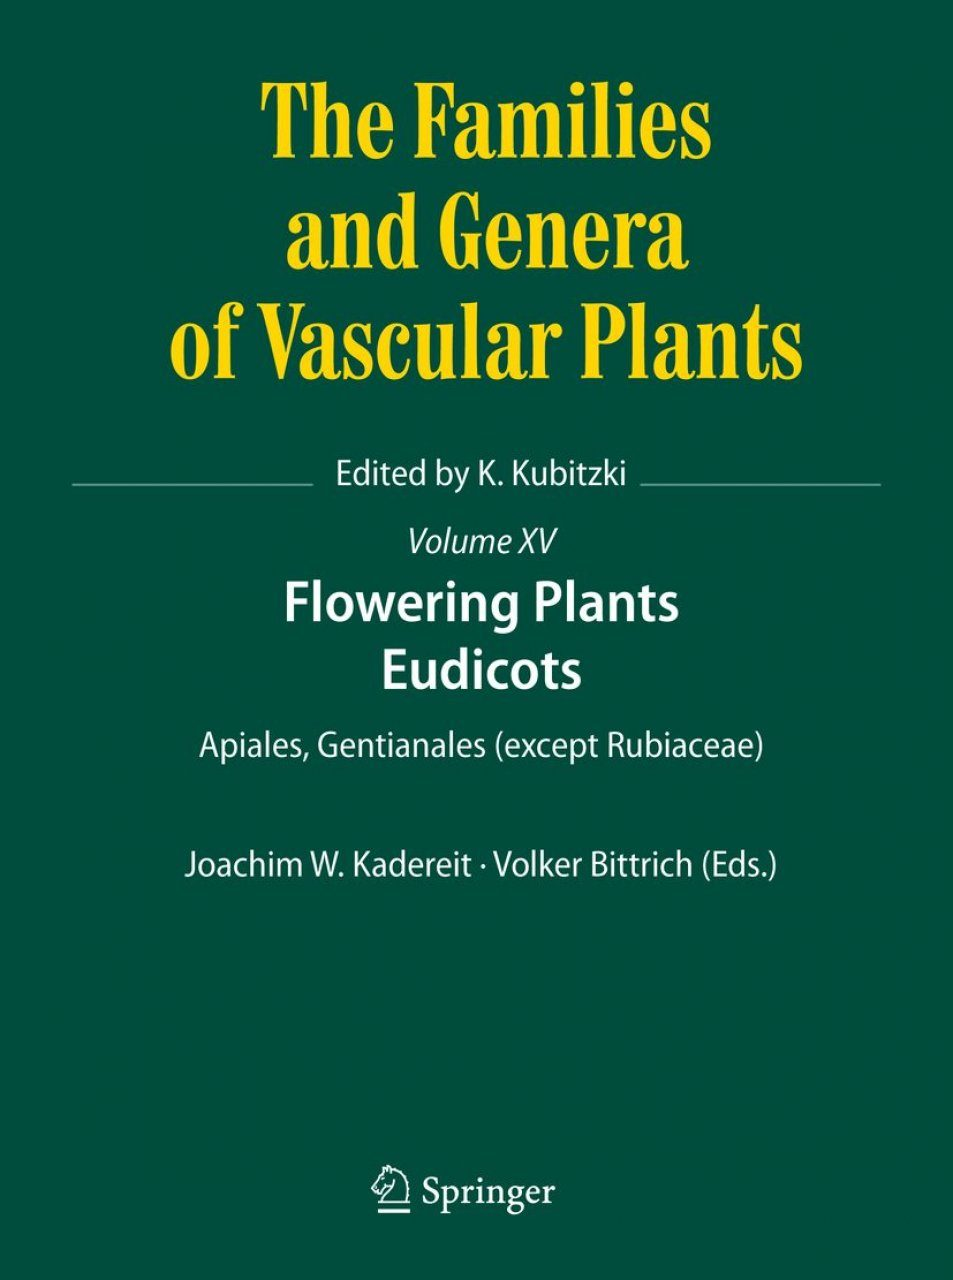 The Families and Genera of Vascular Plants, Volume 15